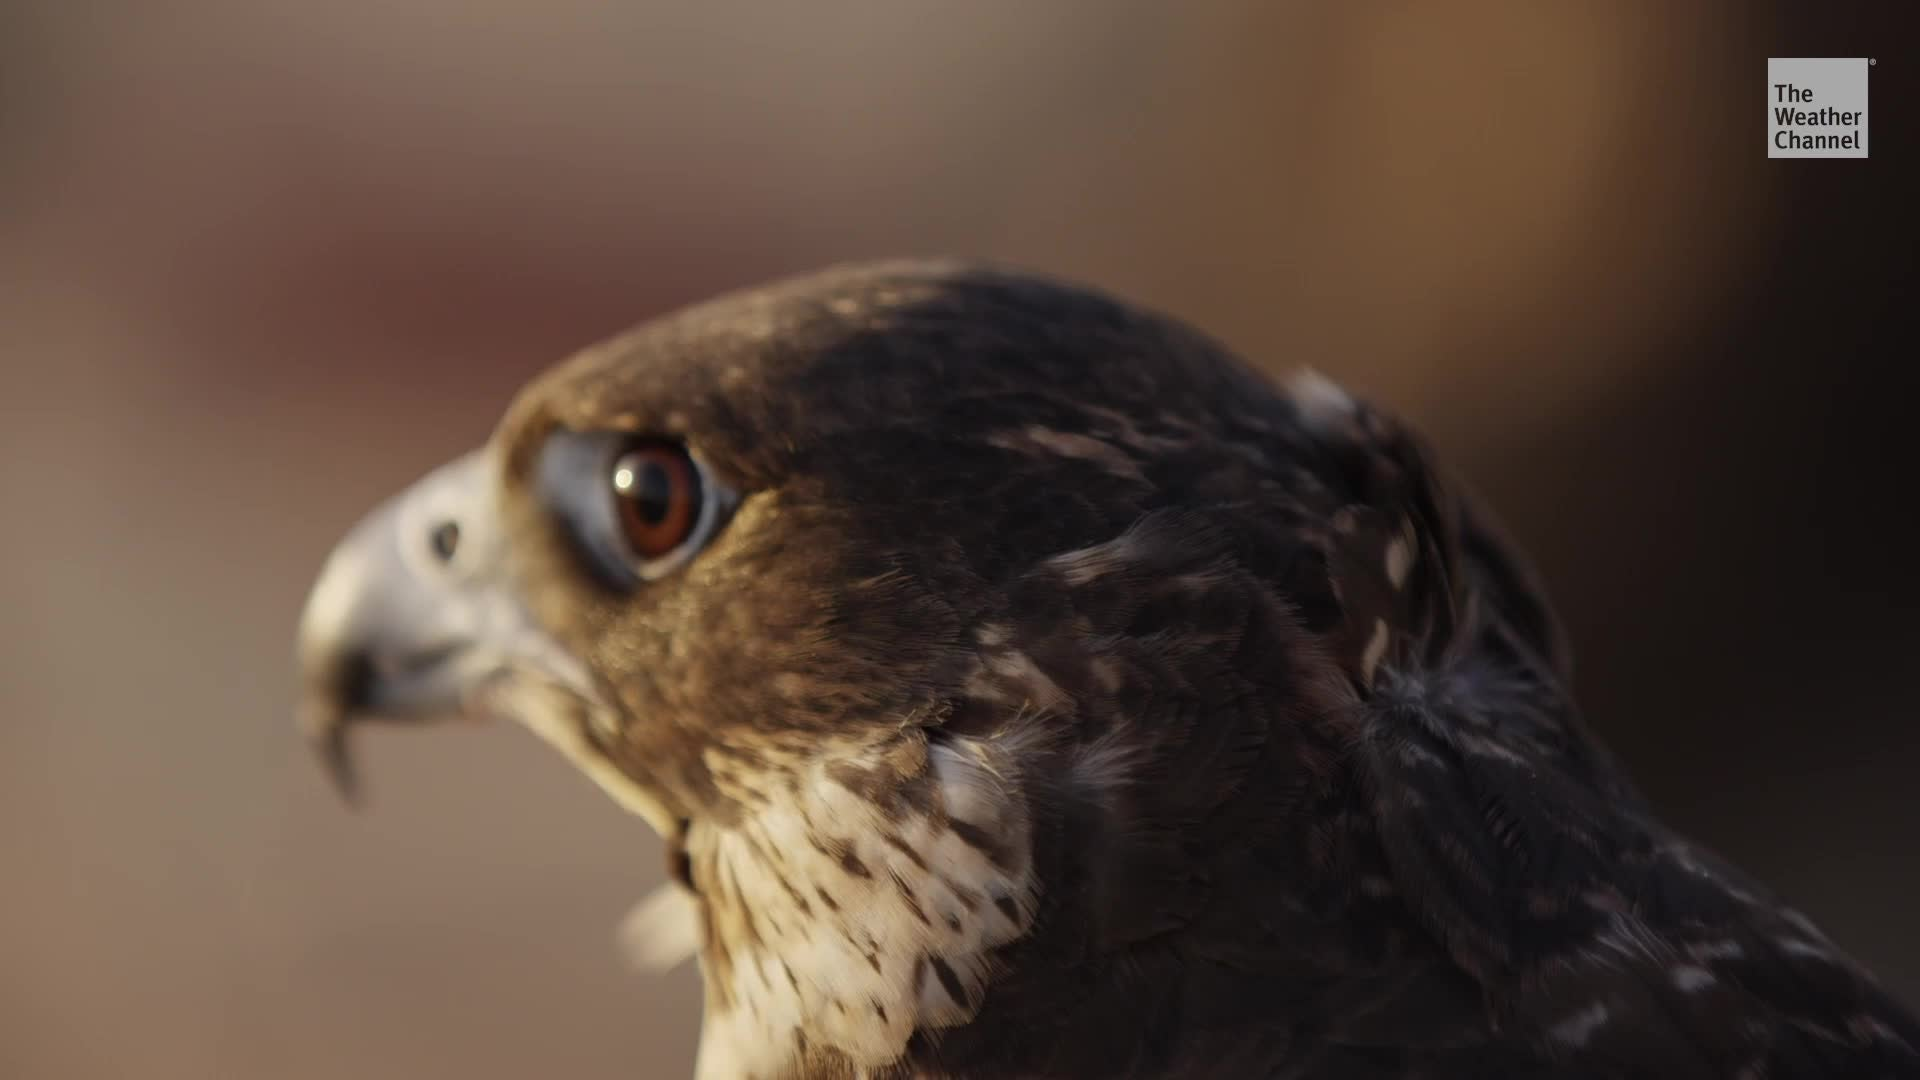 Researchers at University of Central Florida found microplastics in the digestive systems of birds of prey for the first time.